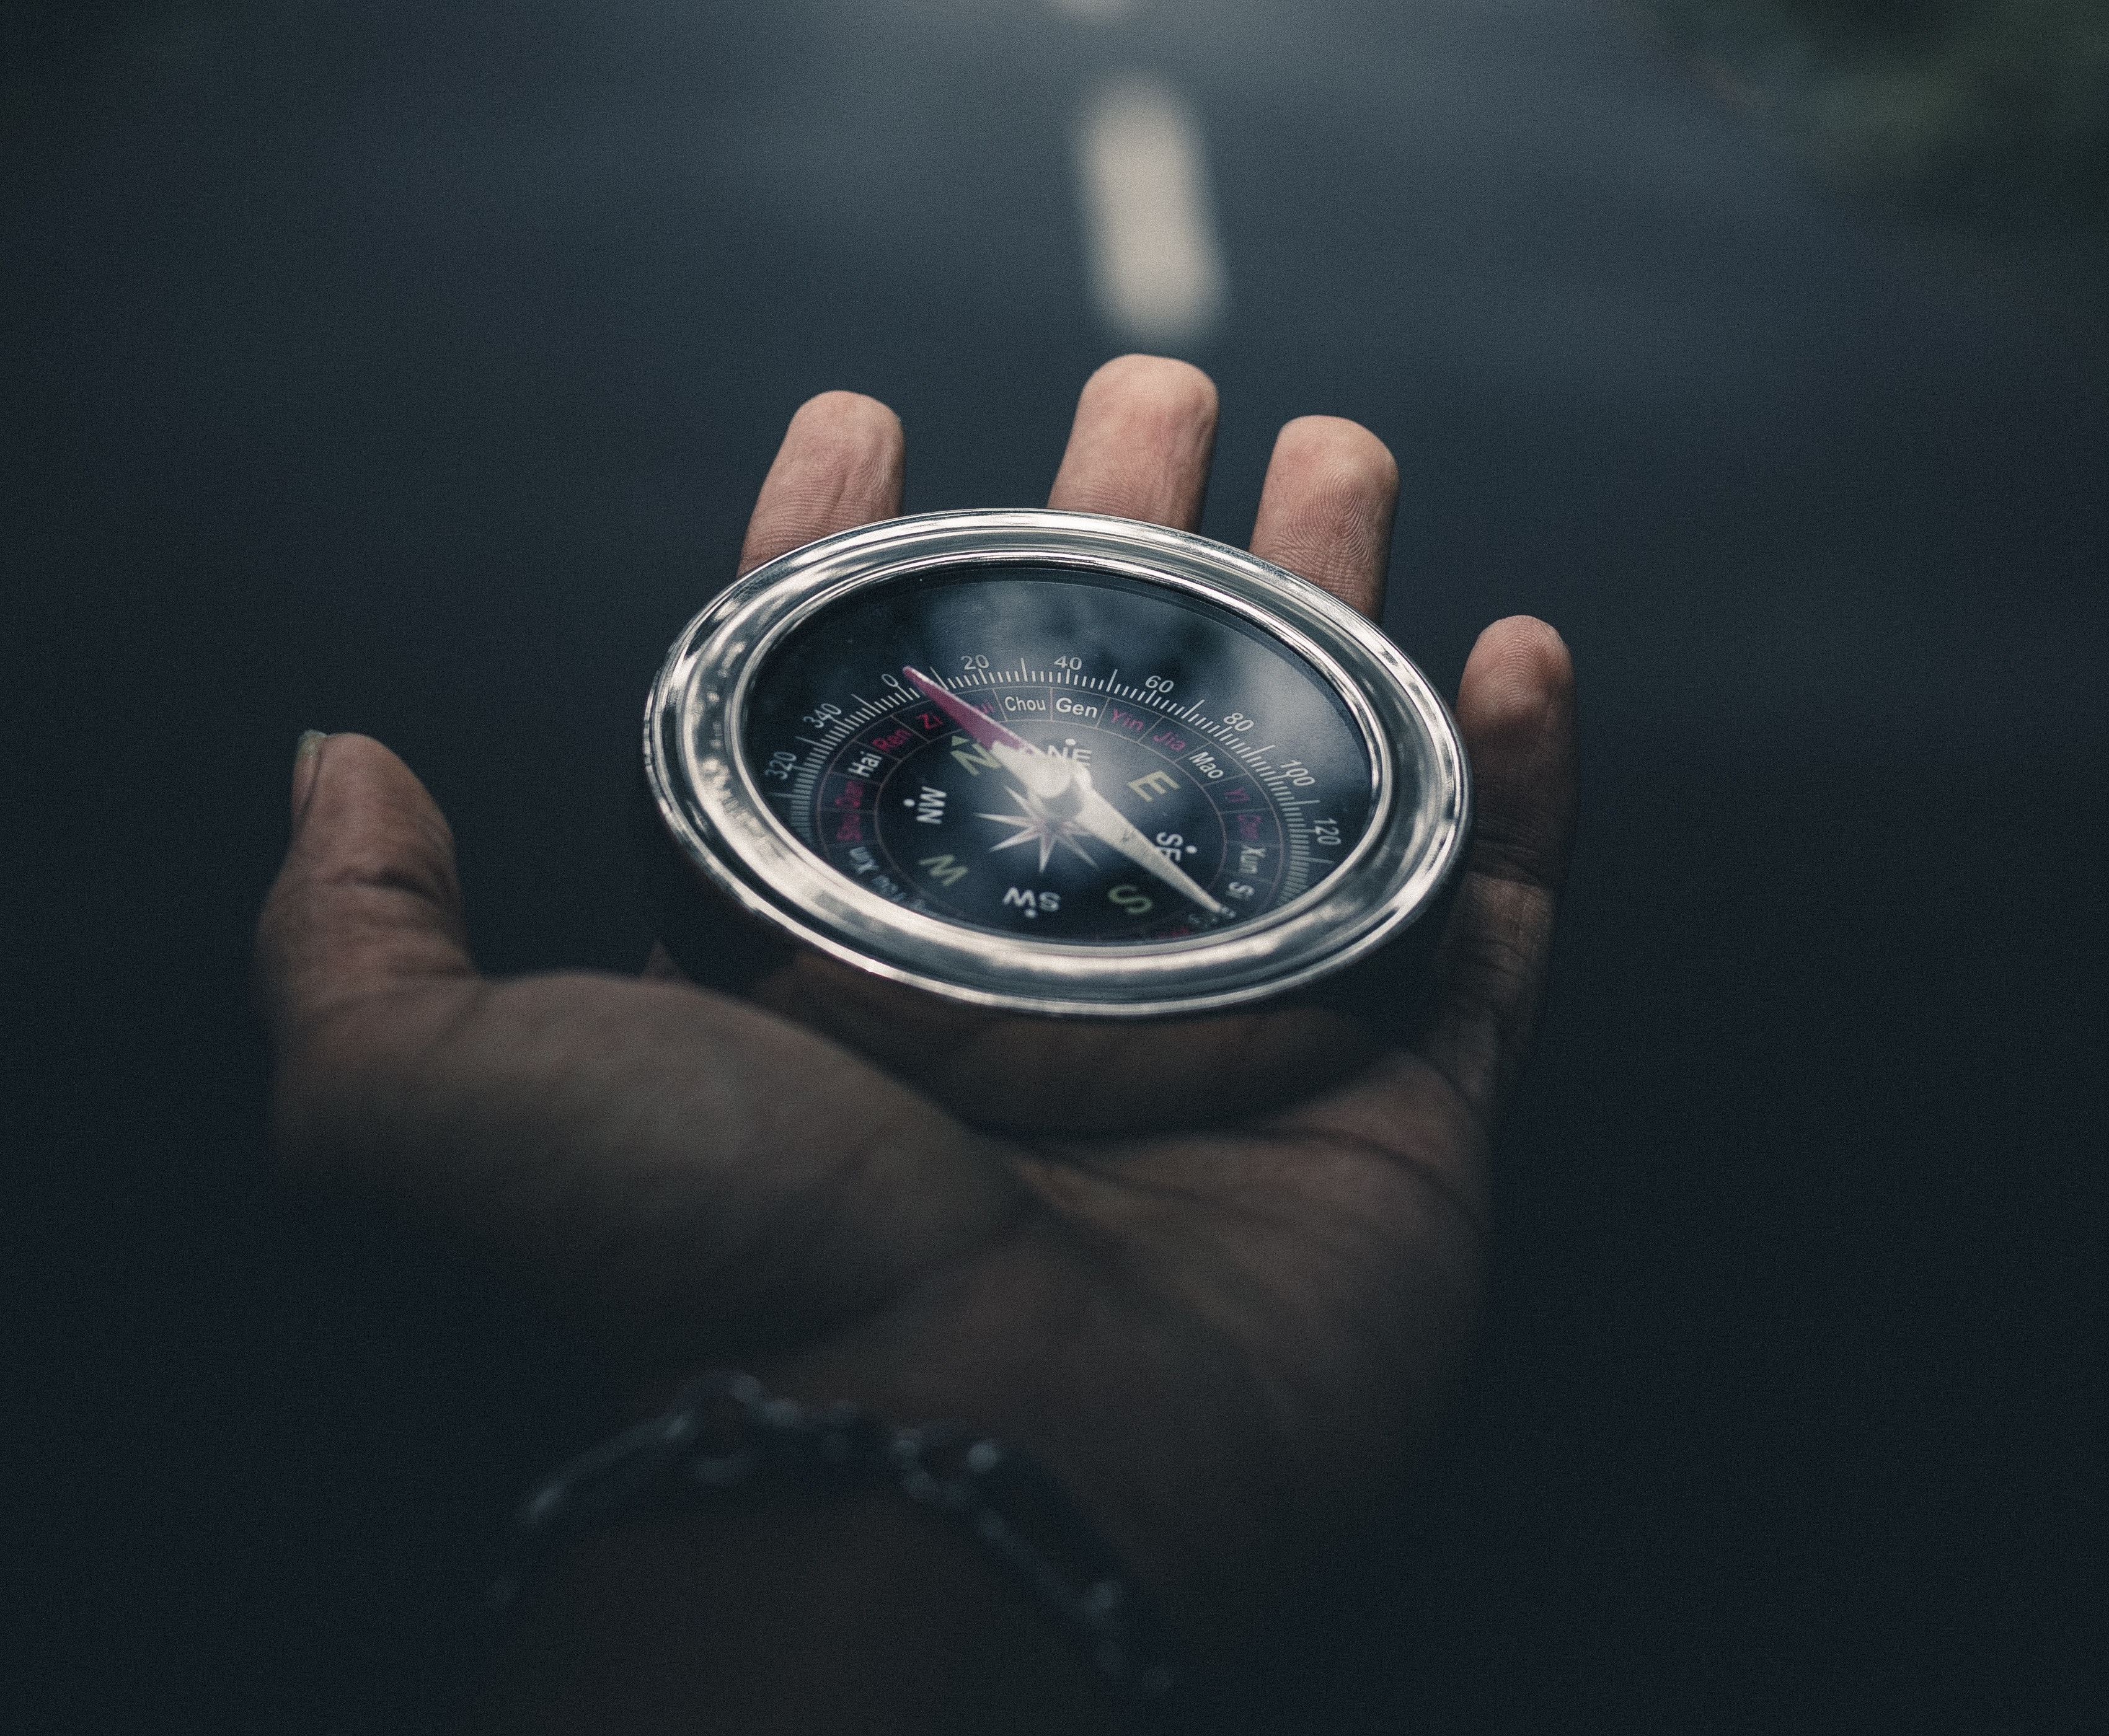 This picture shows a old-fashioned compass in a man's hand.